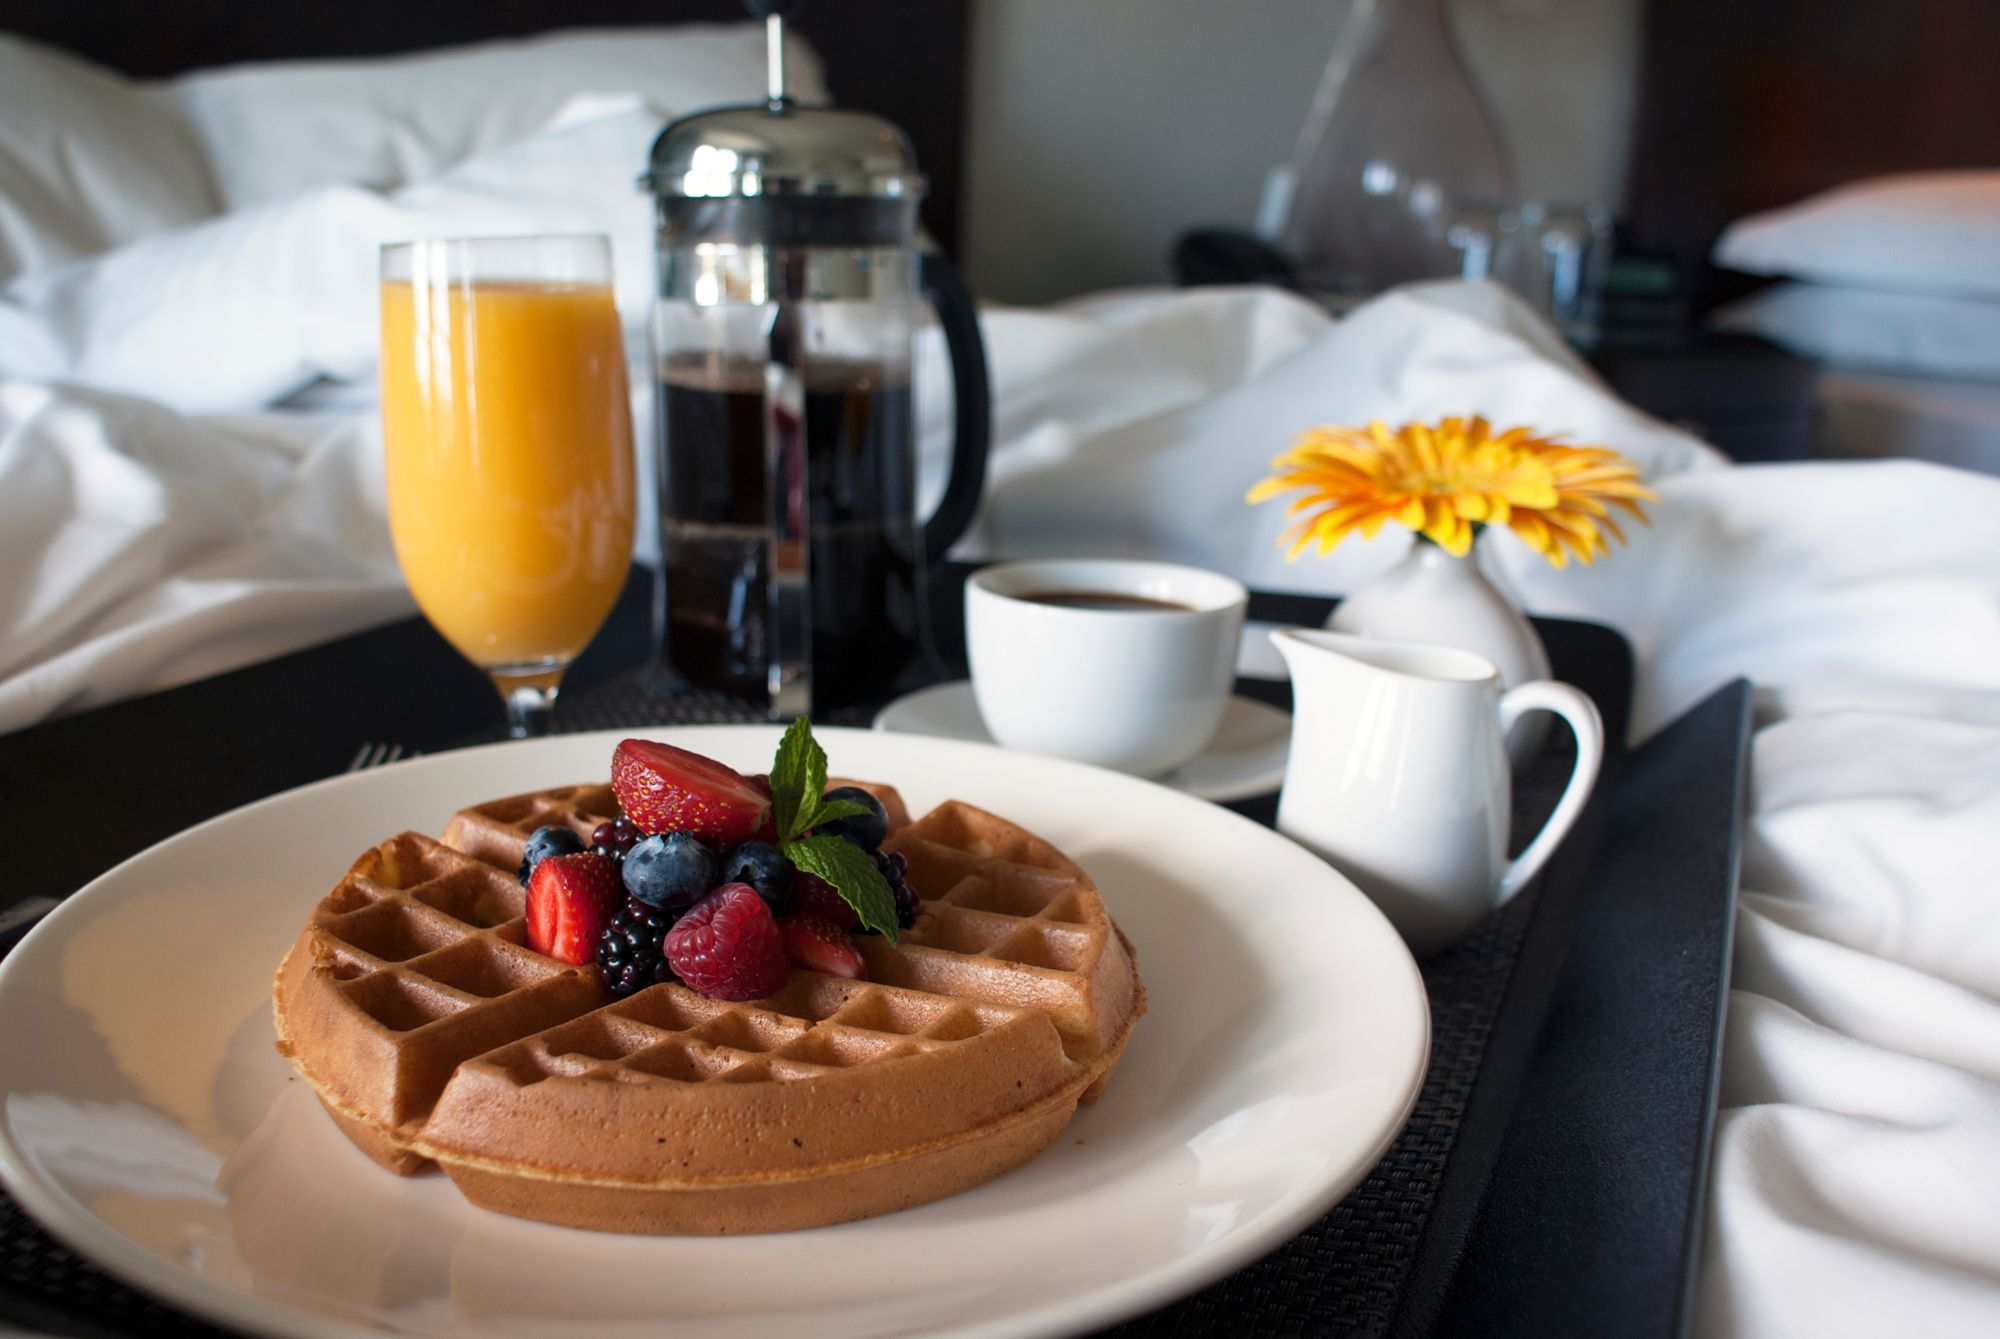 A waffle, coffee and juice on a tray